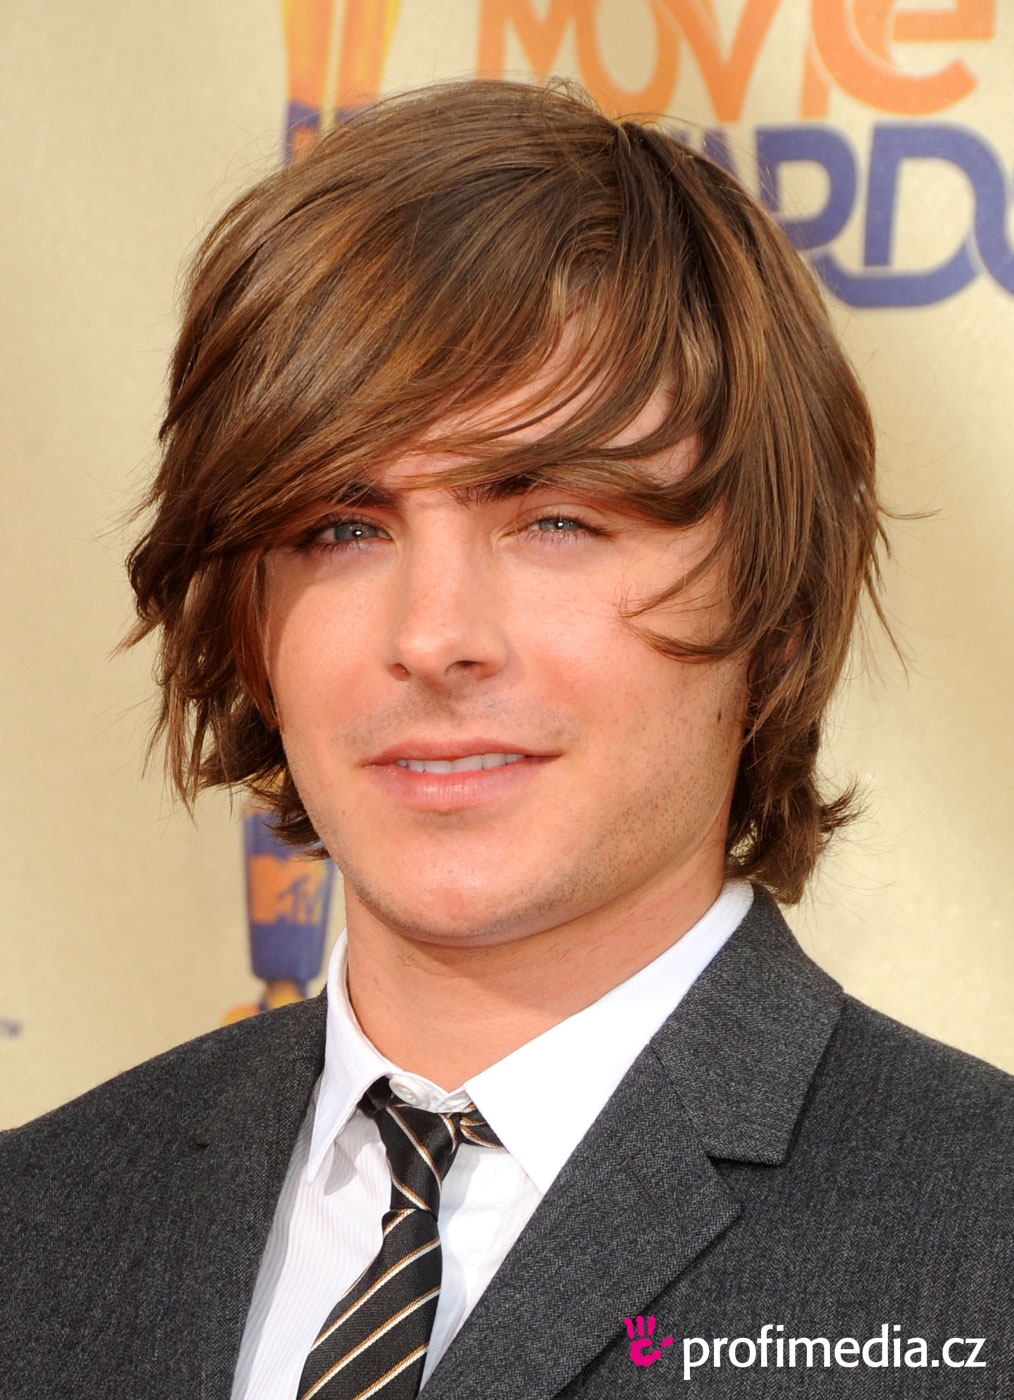 Hairstyles For Men: Zac Efron Hairstyles Are Becoming Popular